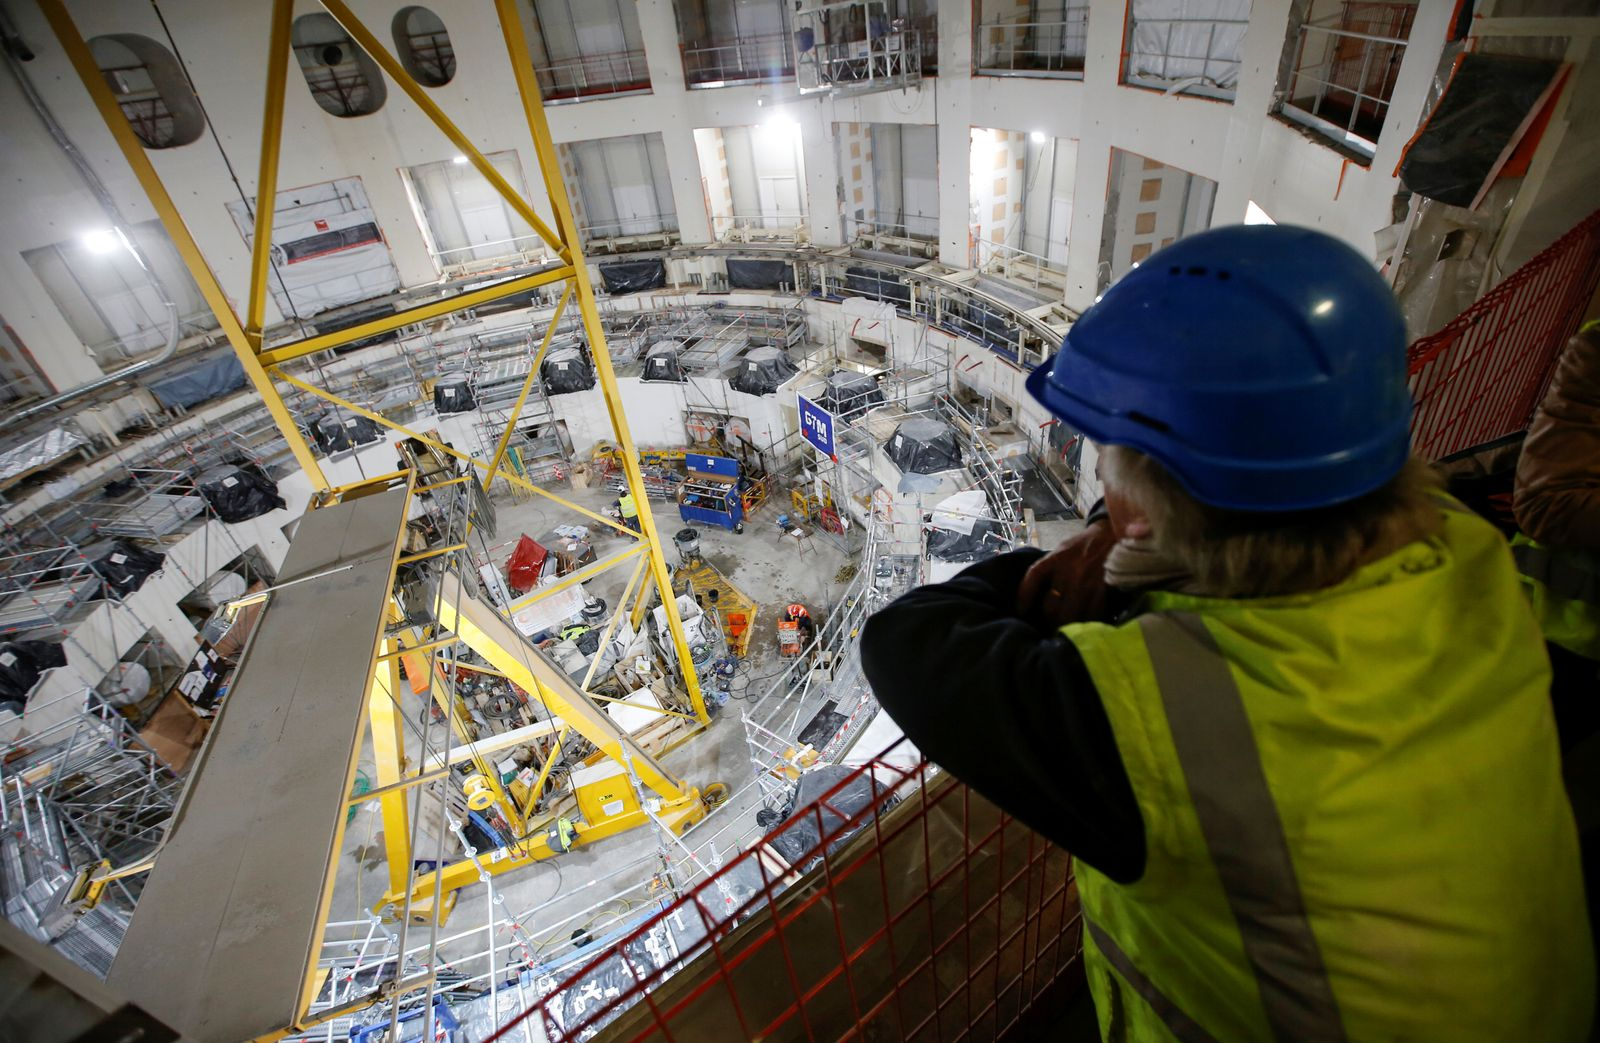 A technician looks at the circular bioshield inside the construction site of the International Thermonuclear Experimental Reactor (ITER) in Saint-Paul-lez-Durance